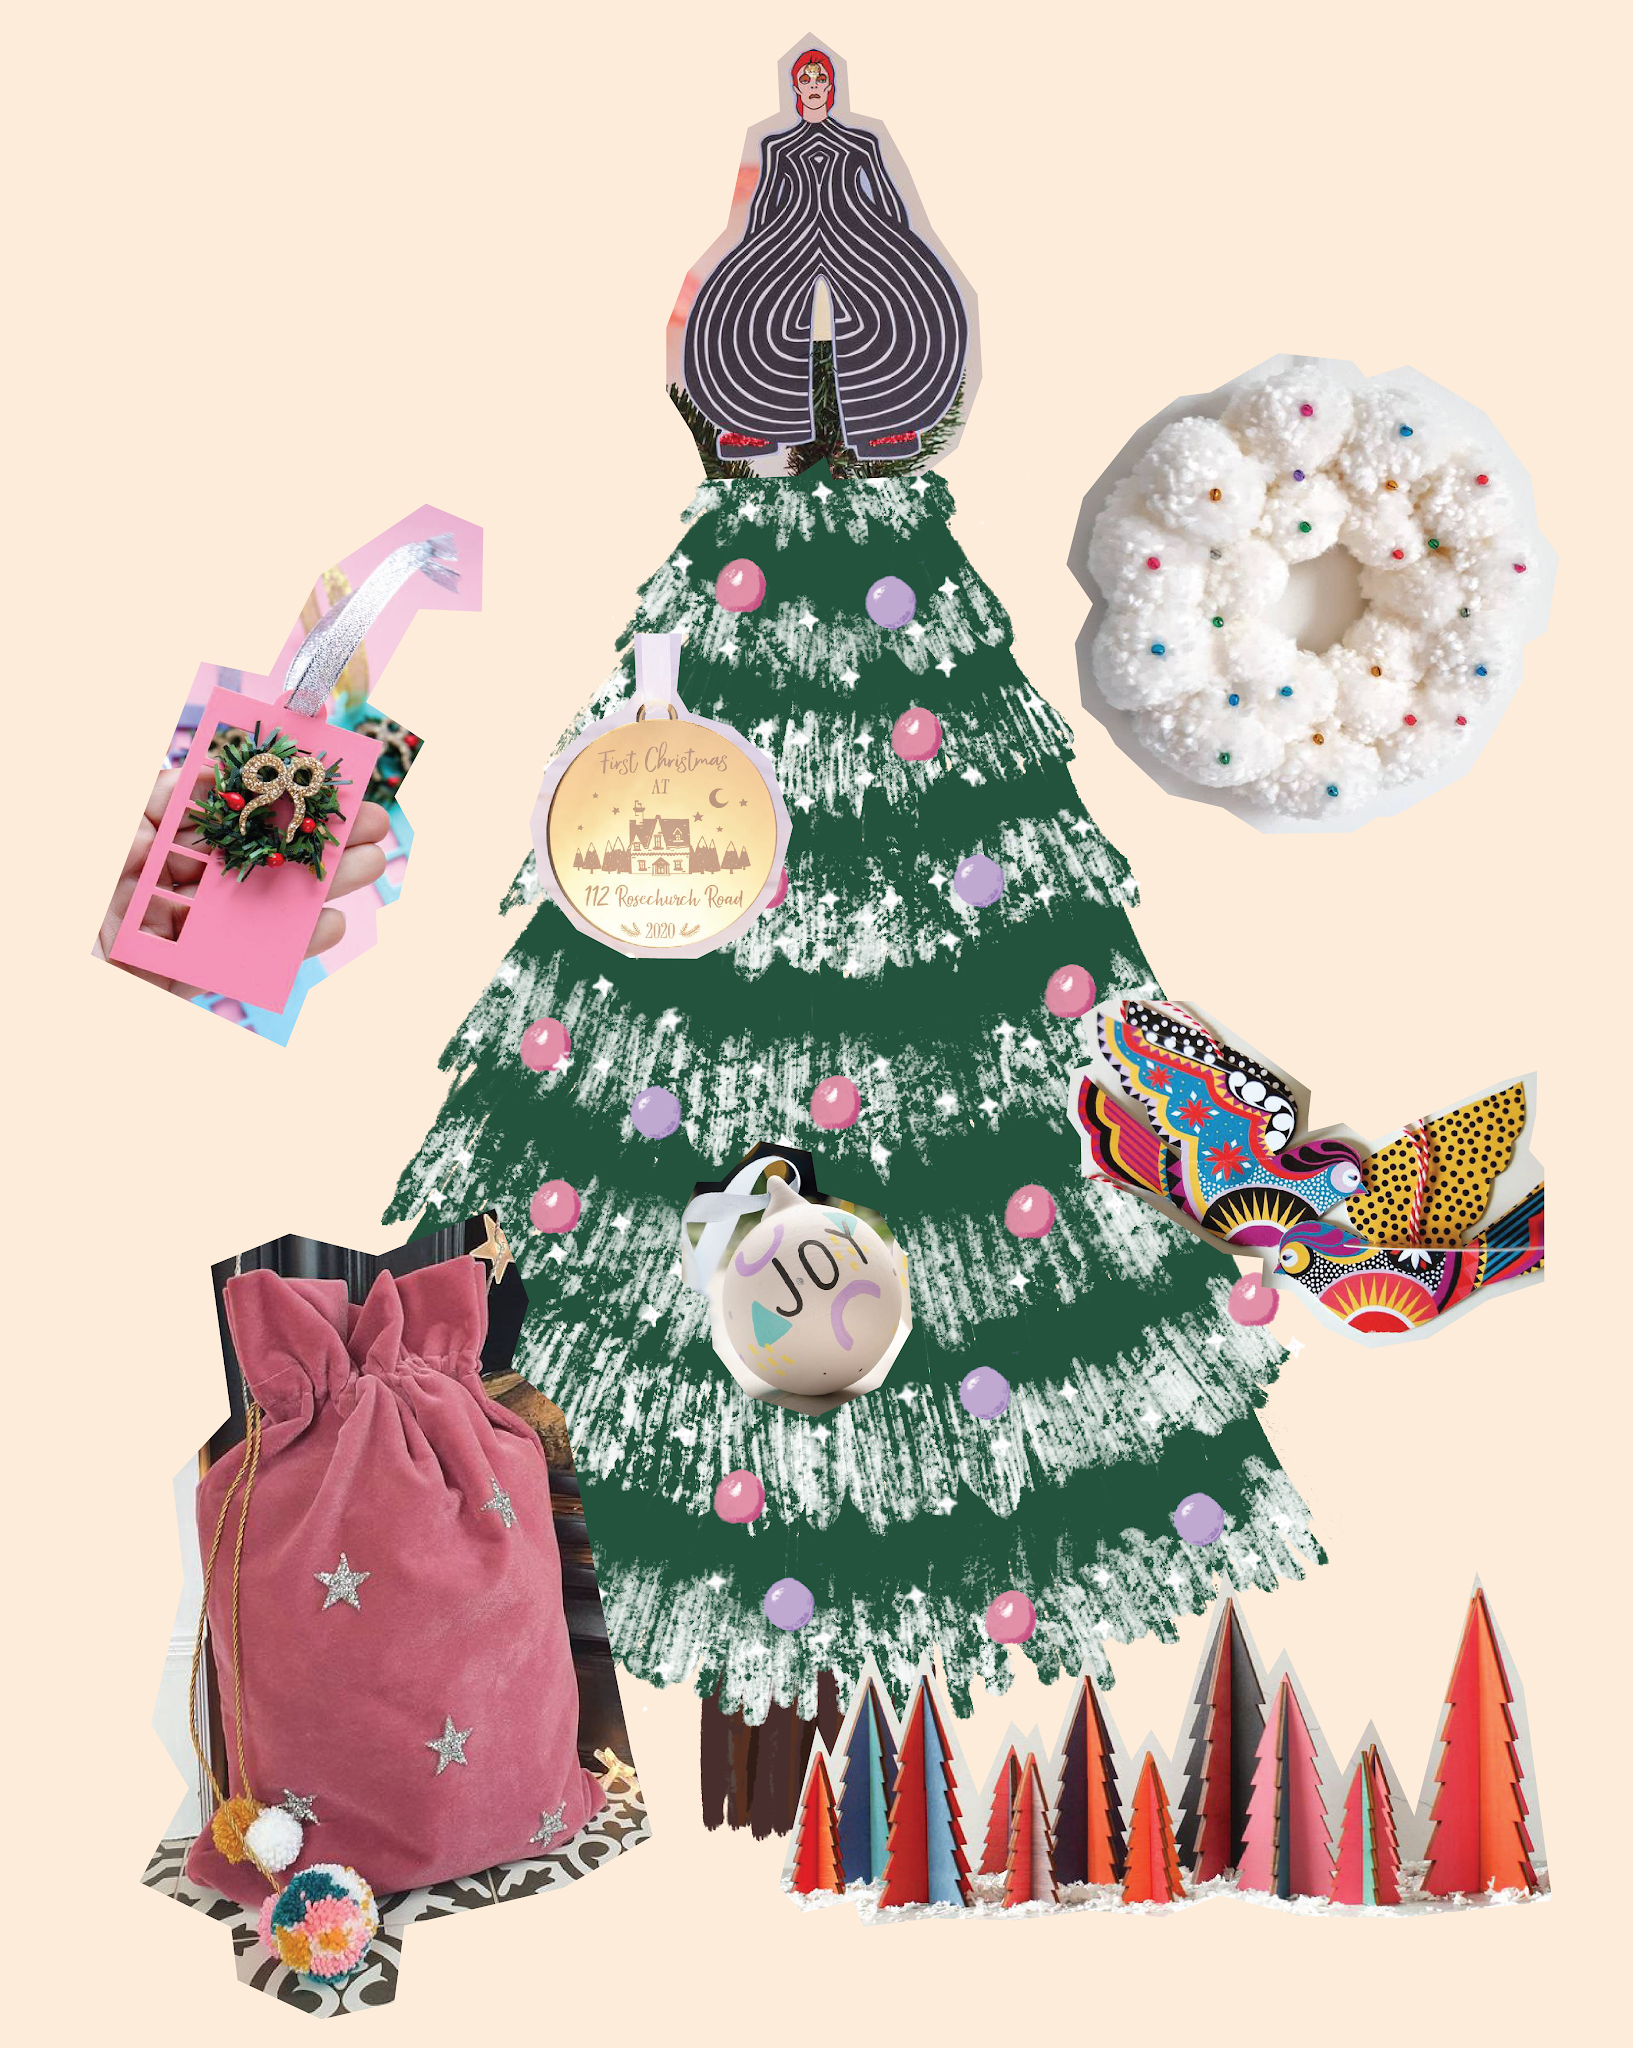 "Christmas tree illustration with various photos of products copied and pasted on top and around tree, including David Bowie Christmas tree topper, pink mid century style acrylic door decoration, personalised gold flat bauble, hand painted personalised white bauble reading ""joy"", white pom pom wreath with colourful spots, patterned bird decorations in bright colours, pink velvet sack with silver stars and pom pom tassle, and bright colourful wooden Christmas tree ornaments"